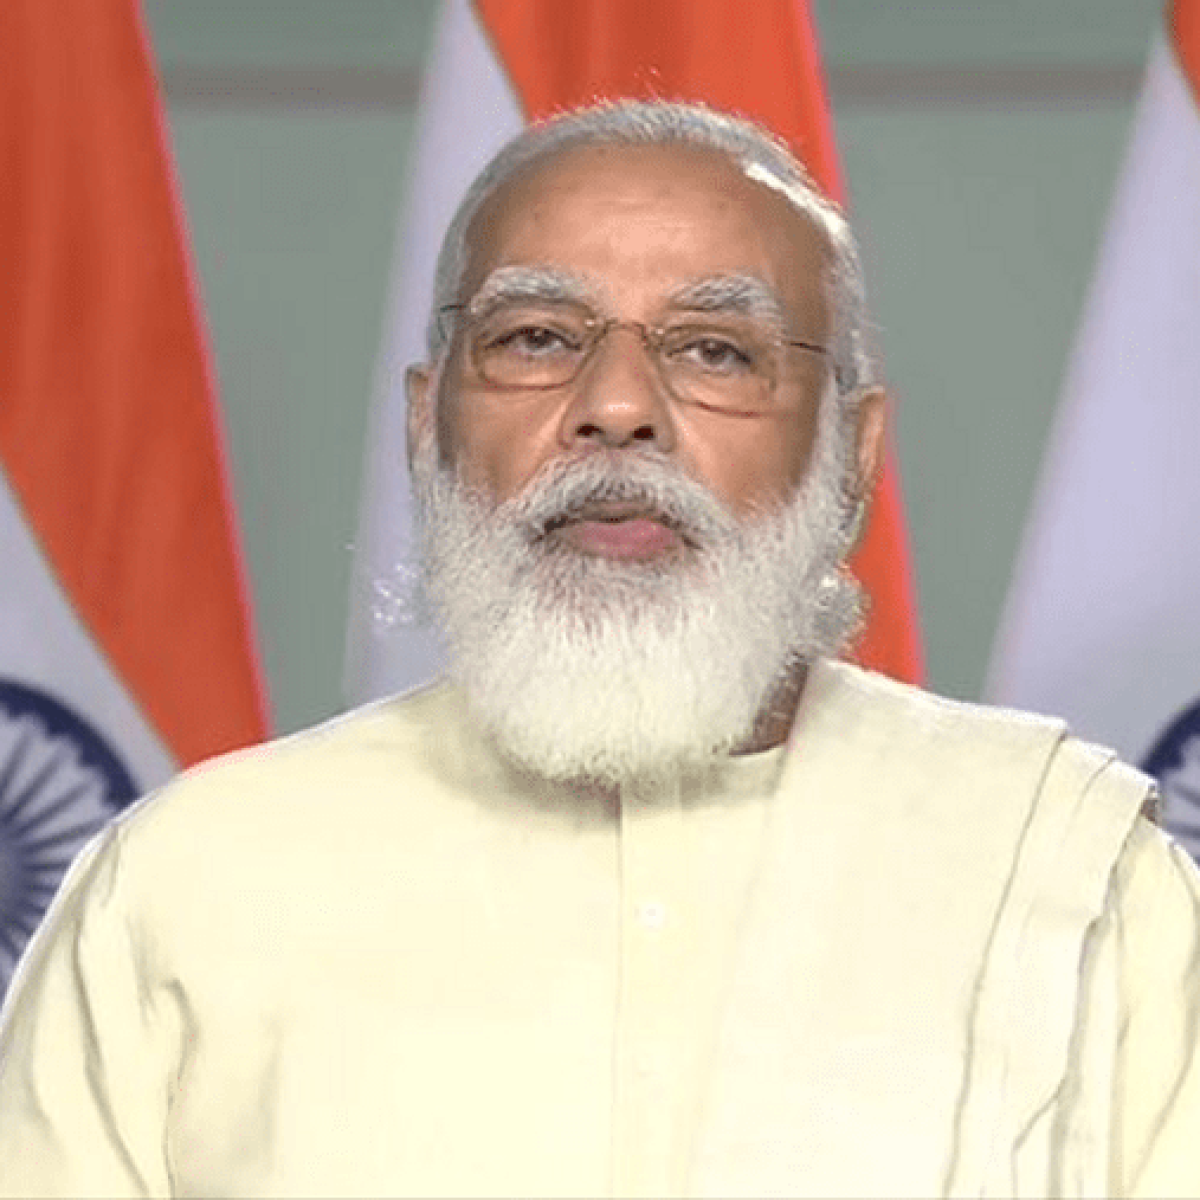 COVID-19: PM Modi speaks to CMs of Telangana, Andhra Pradesh, Odisha, Jharkhand